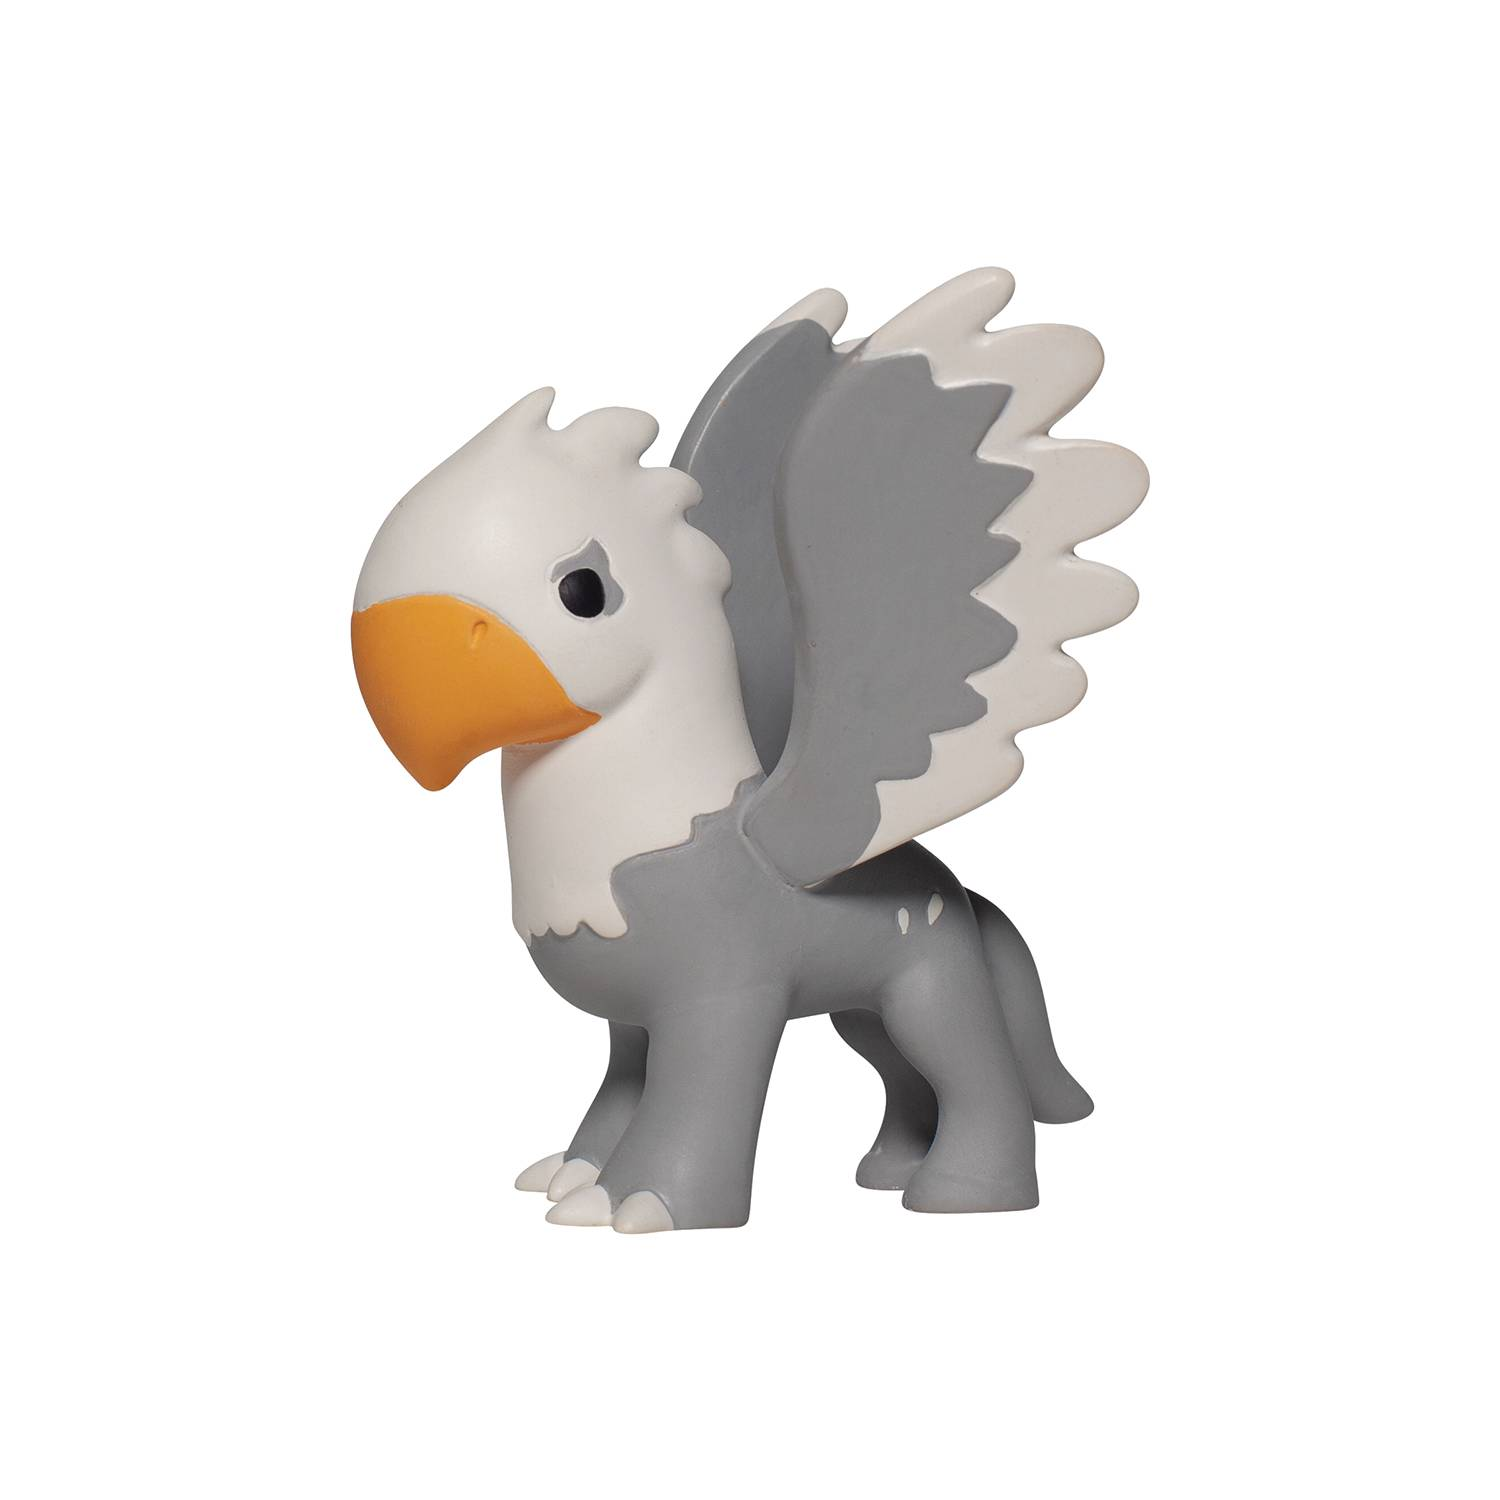 HARRY POTTER BUCKBEAK CHARMS STYLE 2.5IN FIGURINE